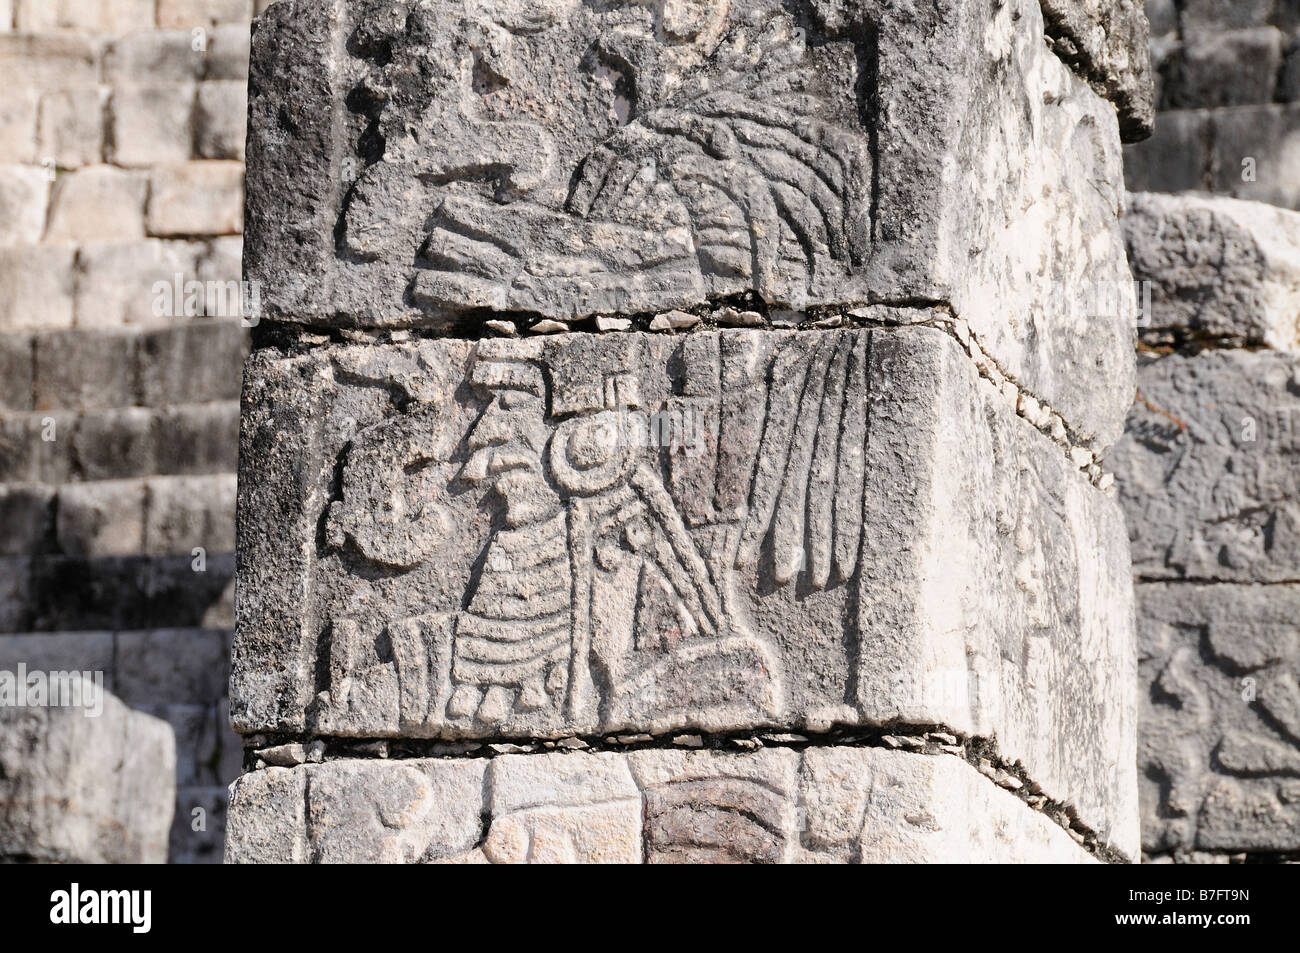 Stone wall carving of Mayan warrior, Chichen Itza, Mexico Stock Photo